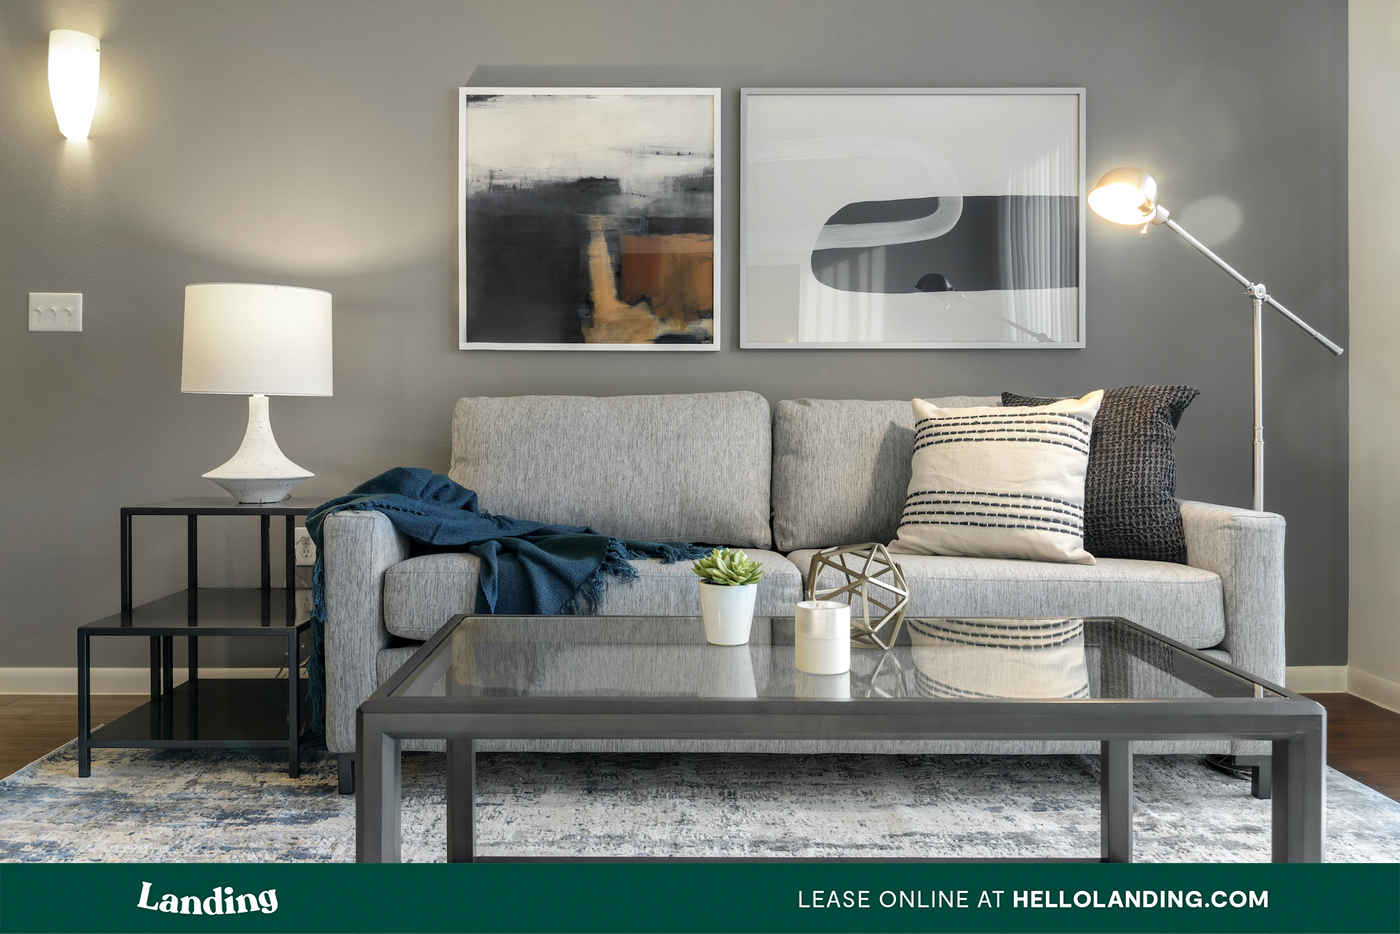 Landing Furnished Apartment Midtown Pointe Apartments photo